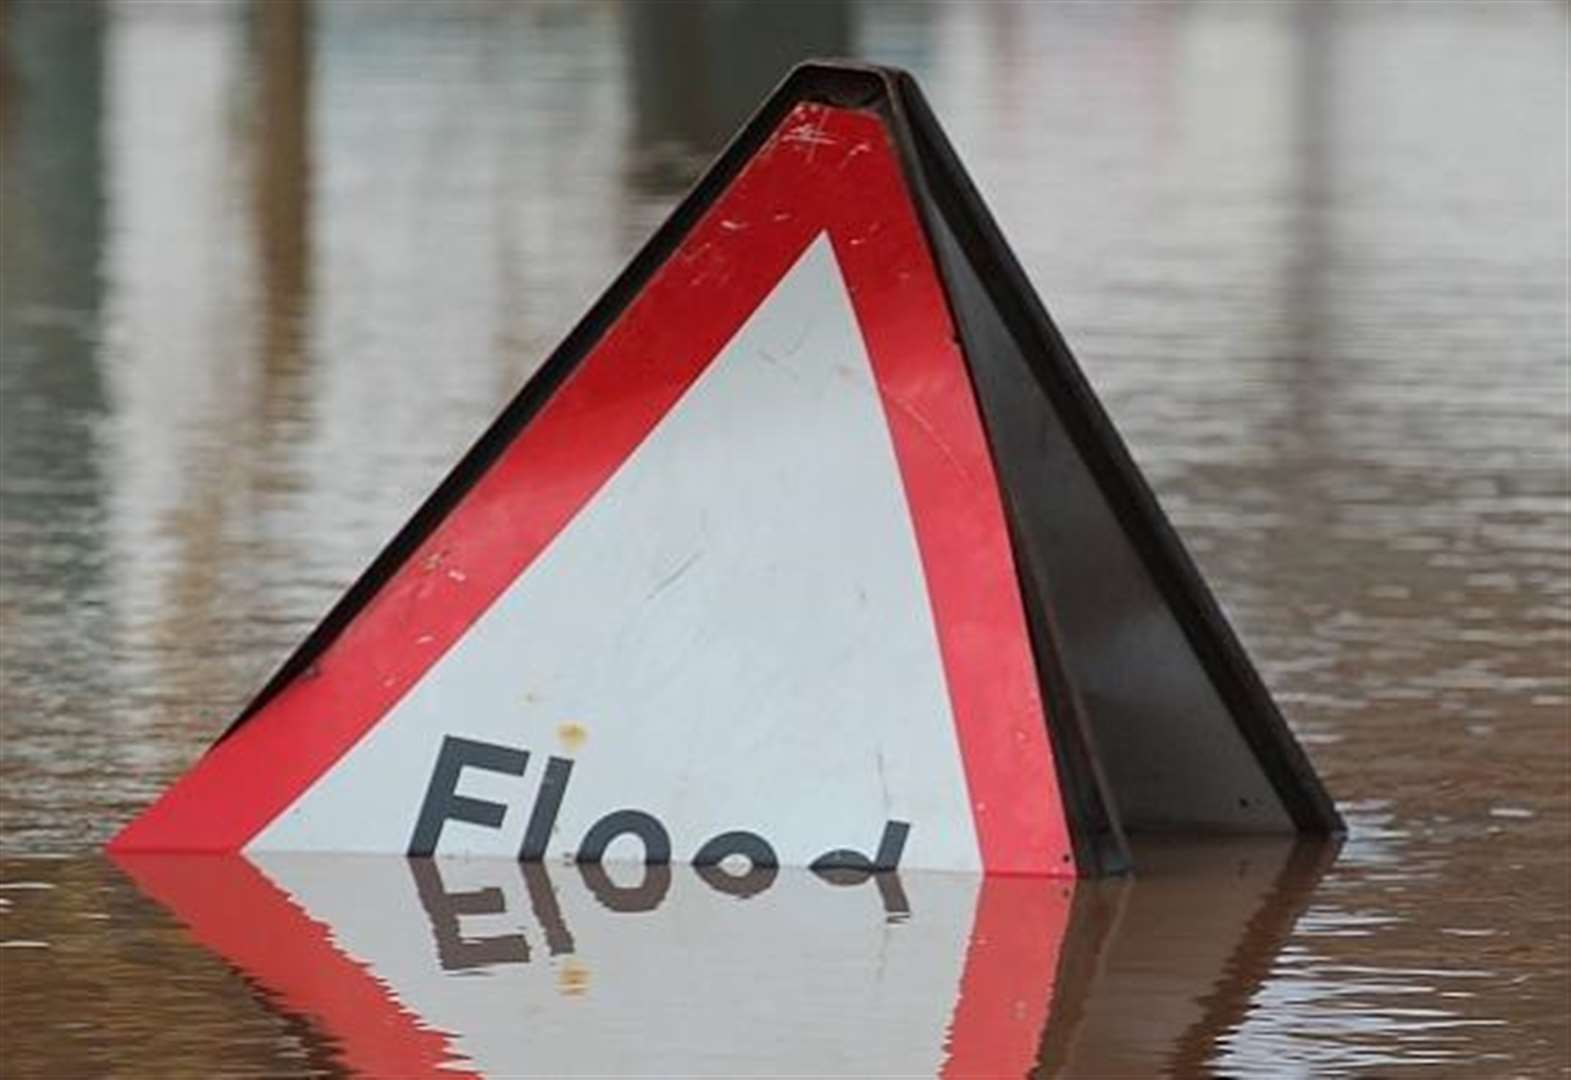 Parts of Kent on alert as flood warning follows heavy rain